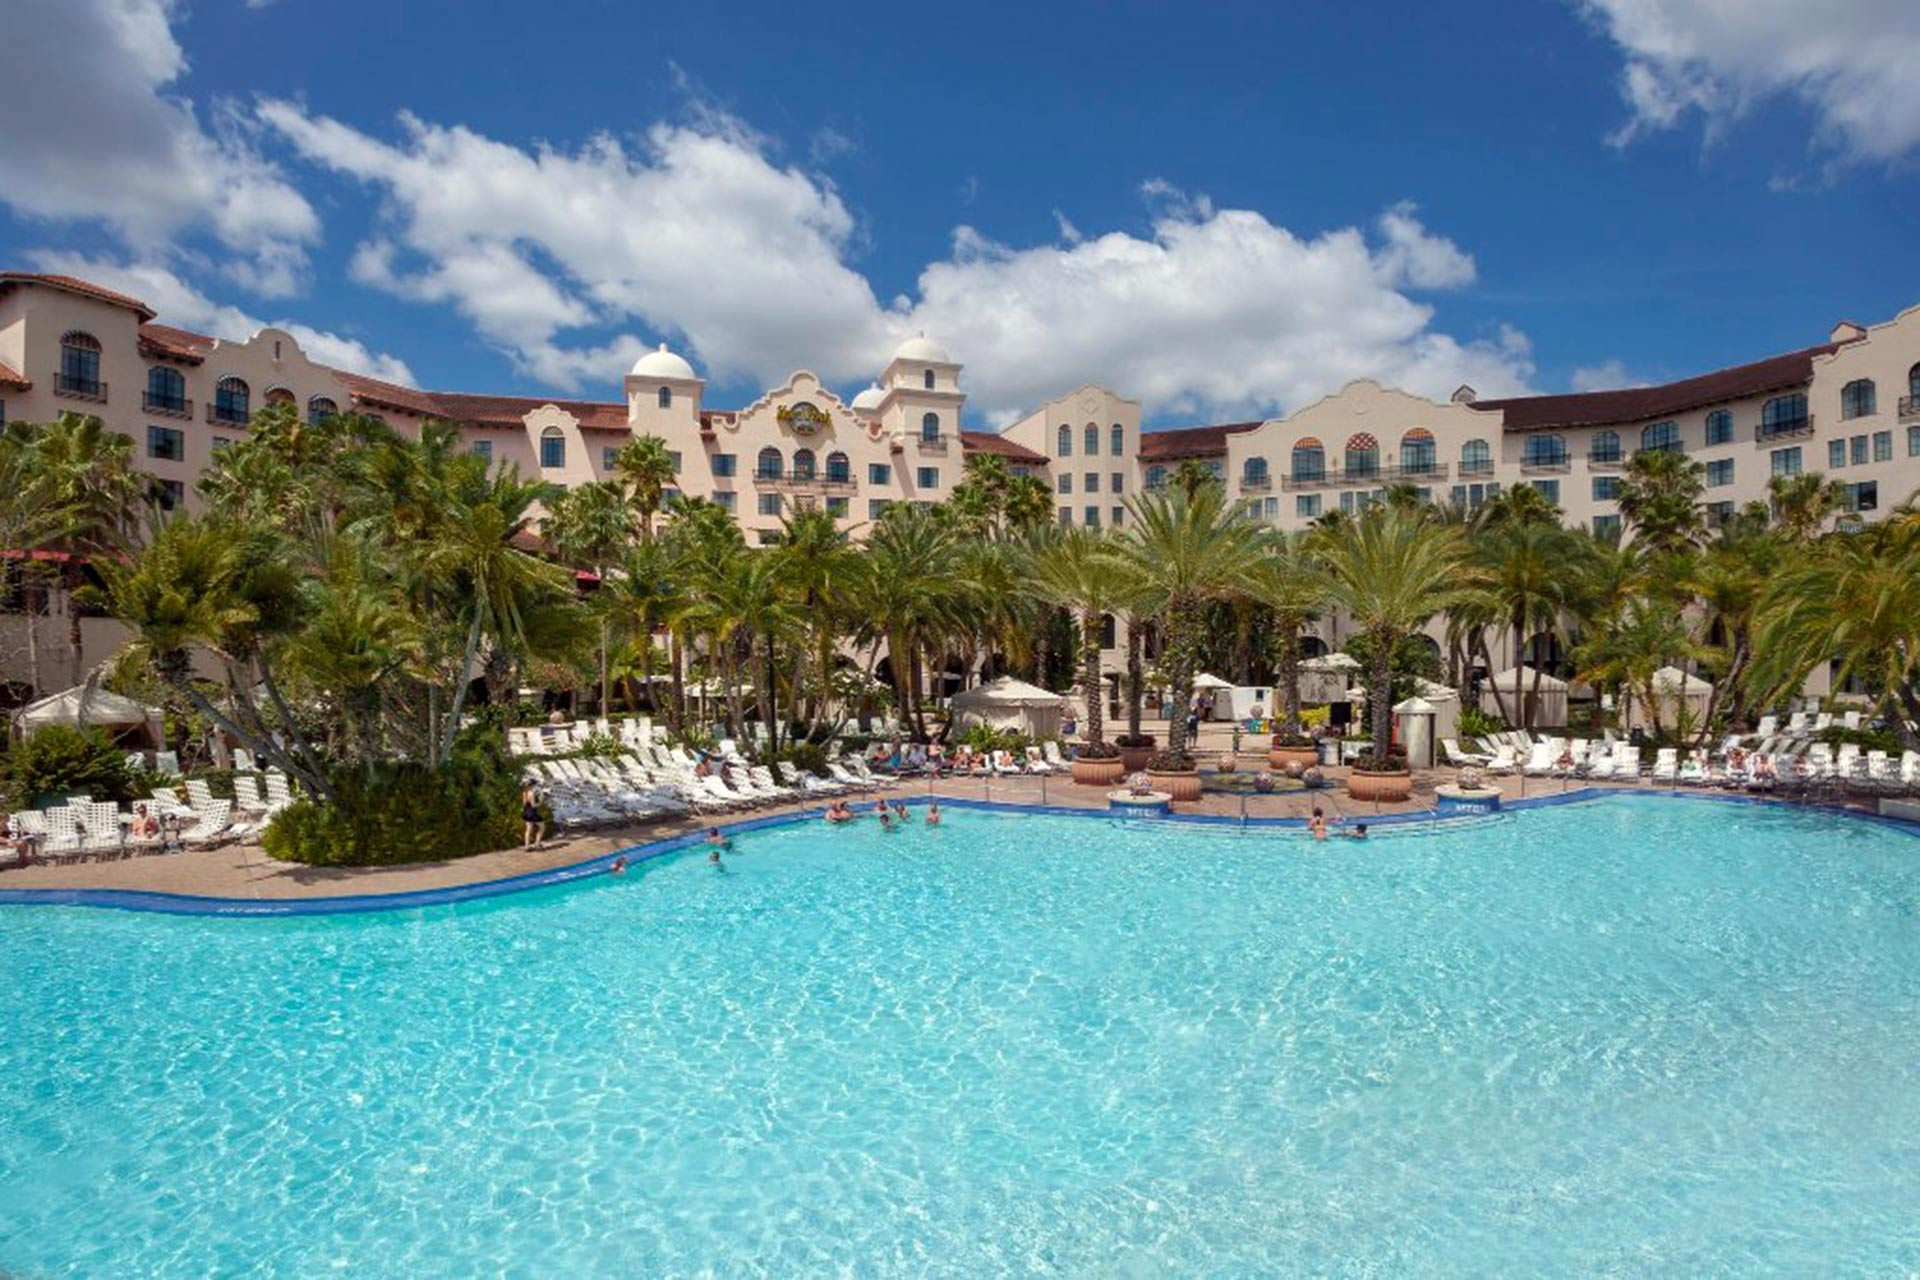 Hard Rock Hotel at Universal Orlando Resort in Florida